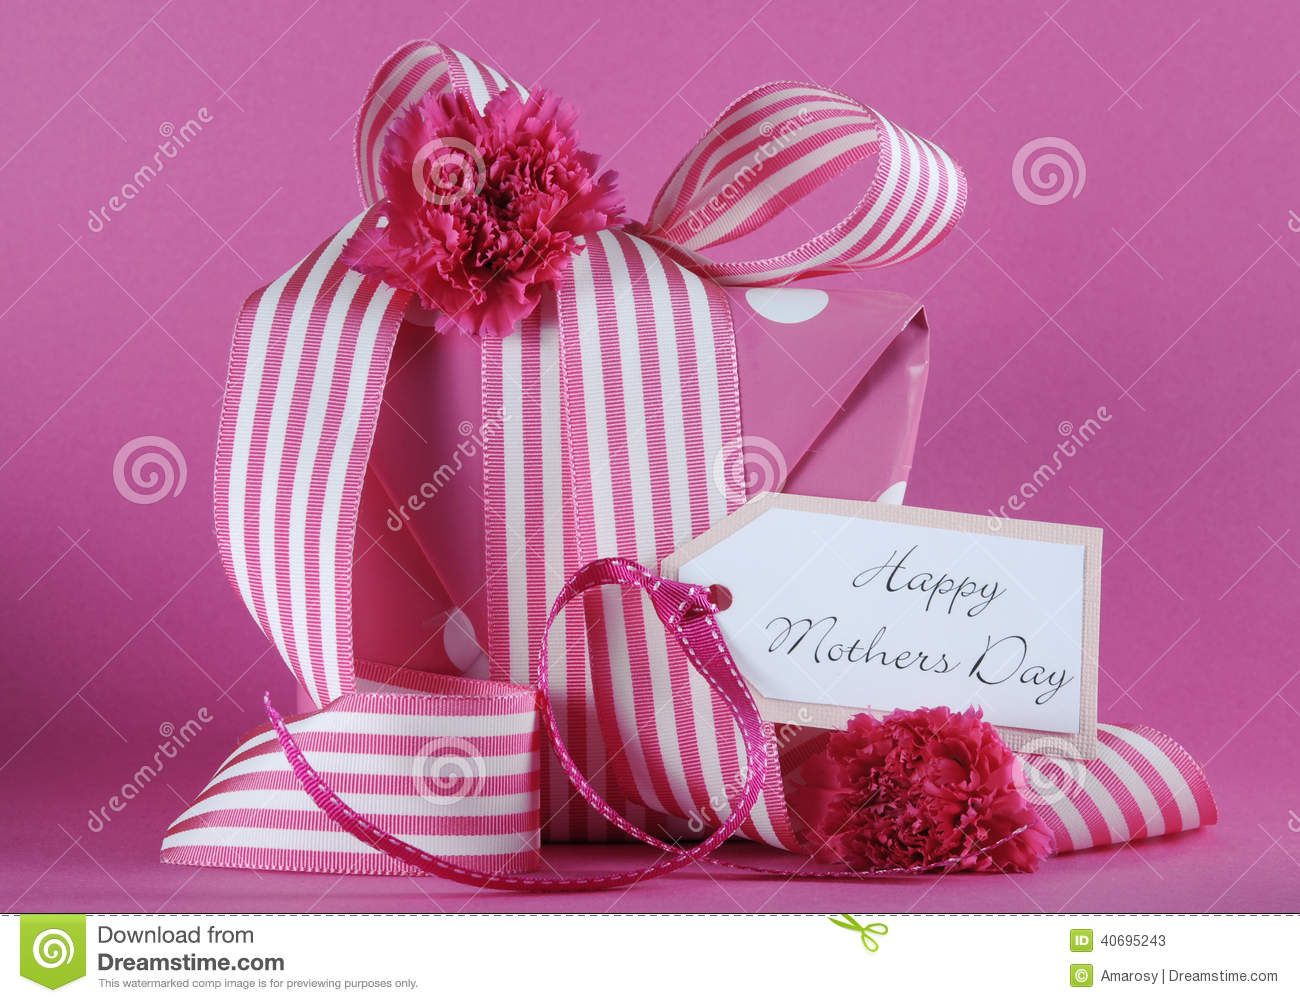 Happy Mothers Day pink polka dot and stripe ribbon gift